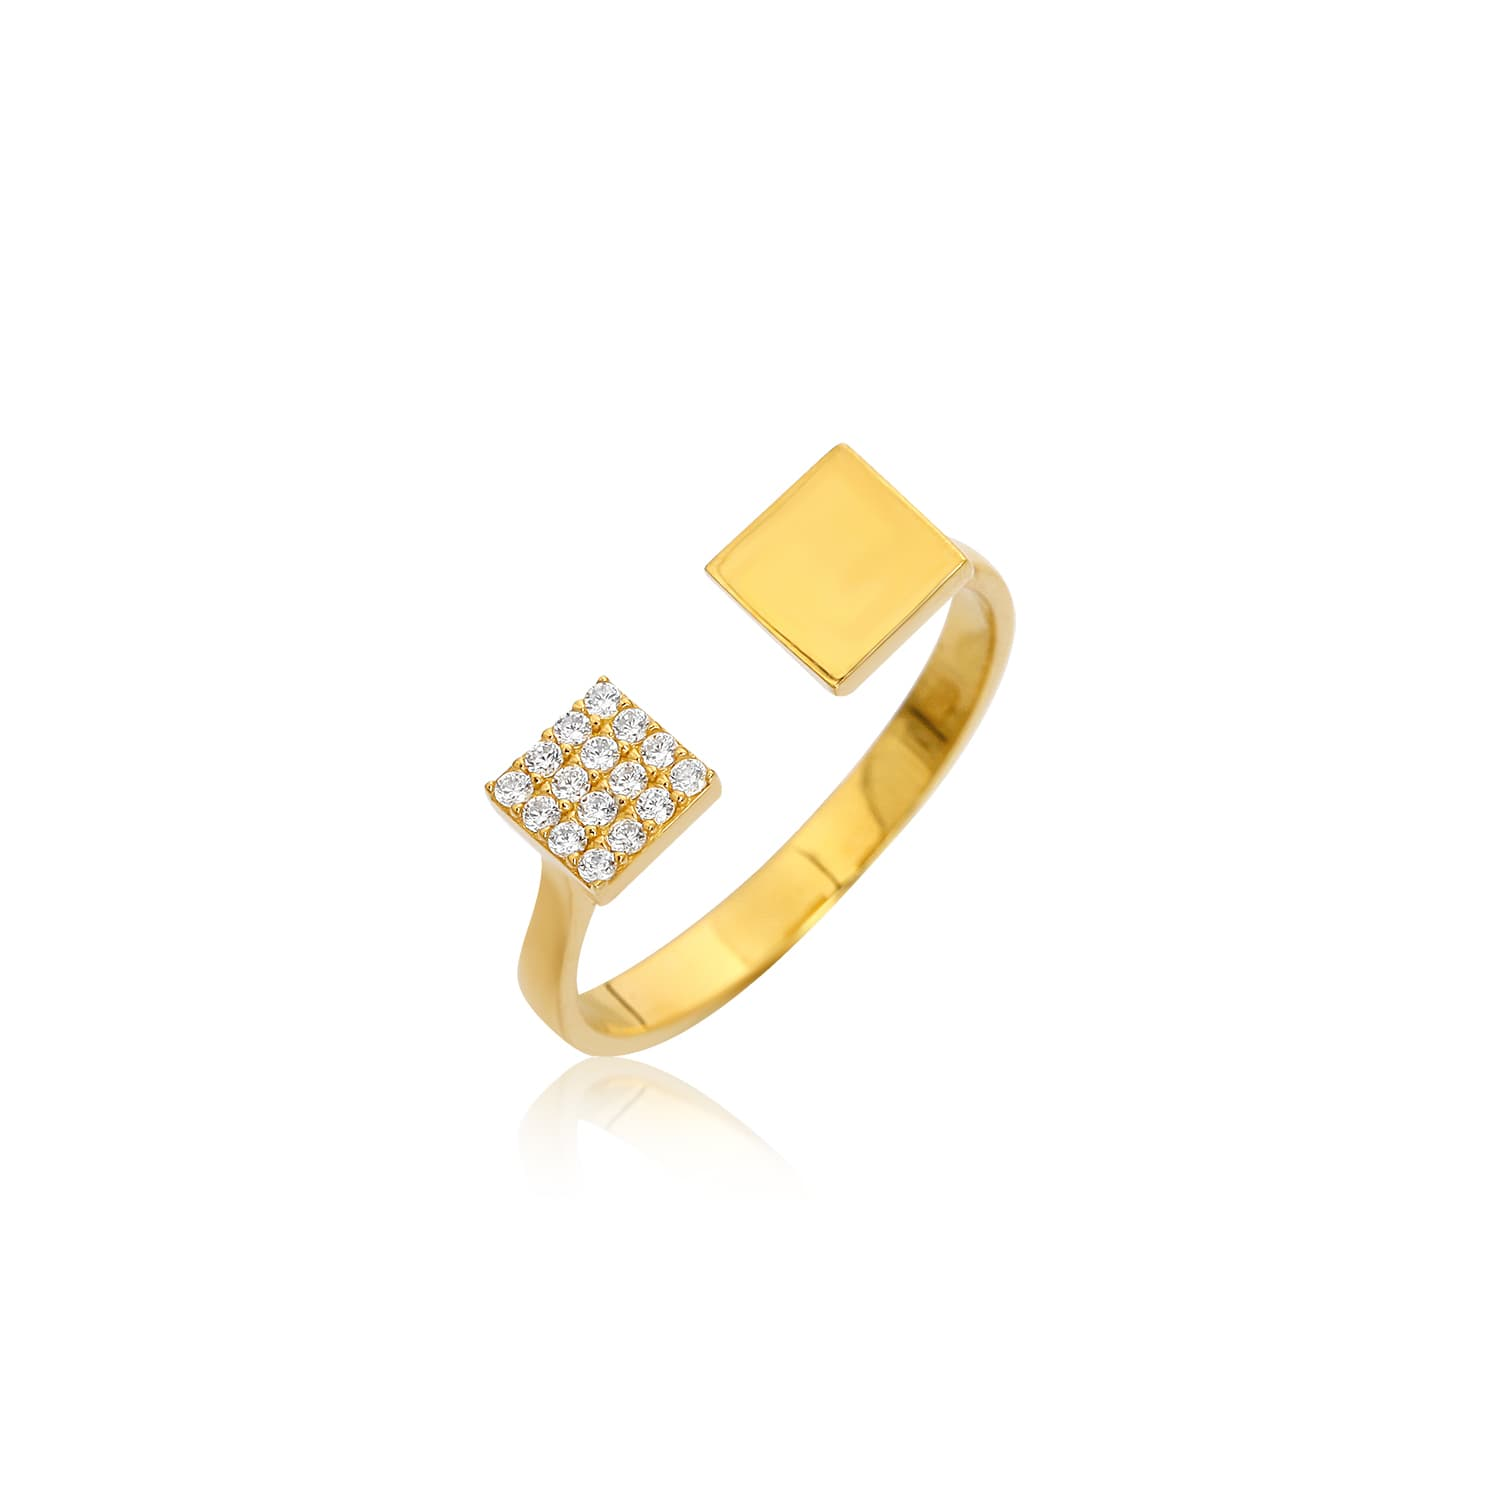 Open top ring with gold plated stone on silver